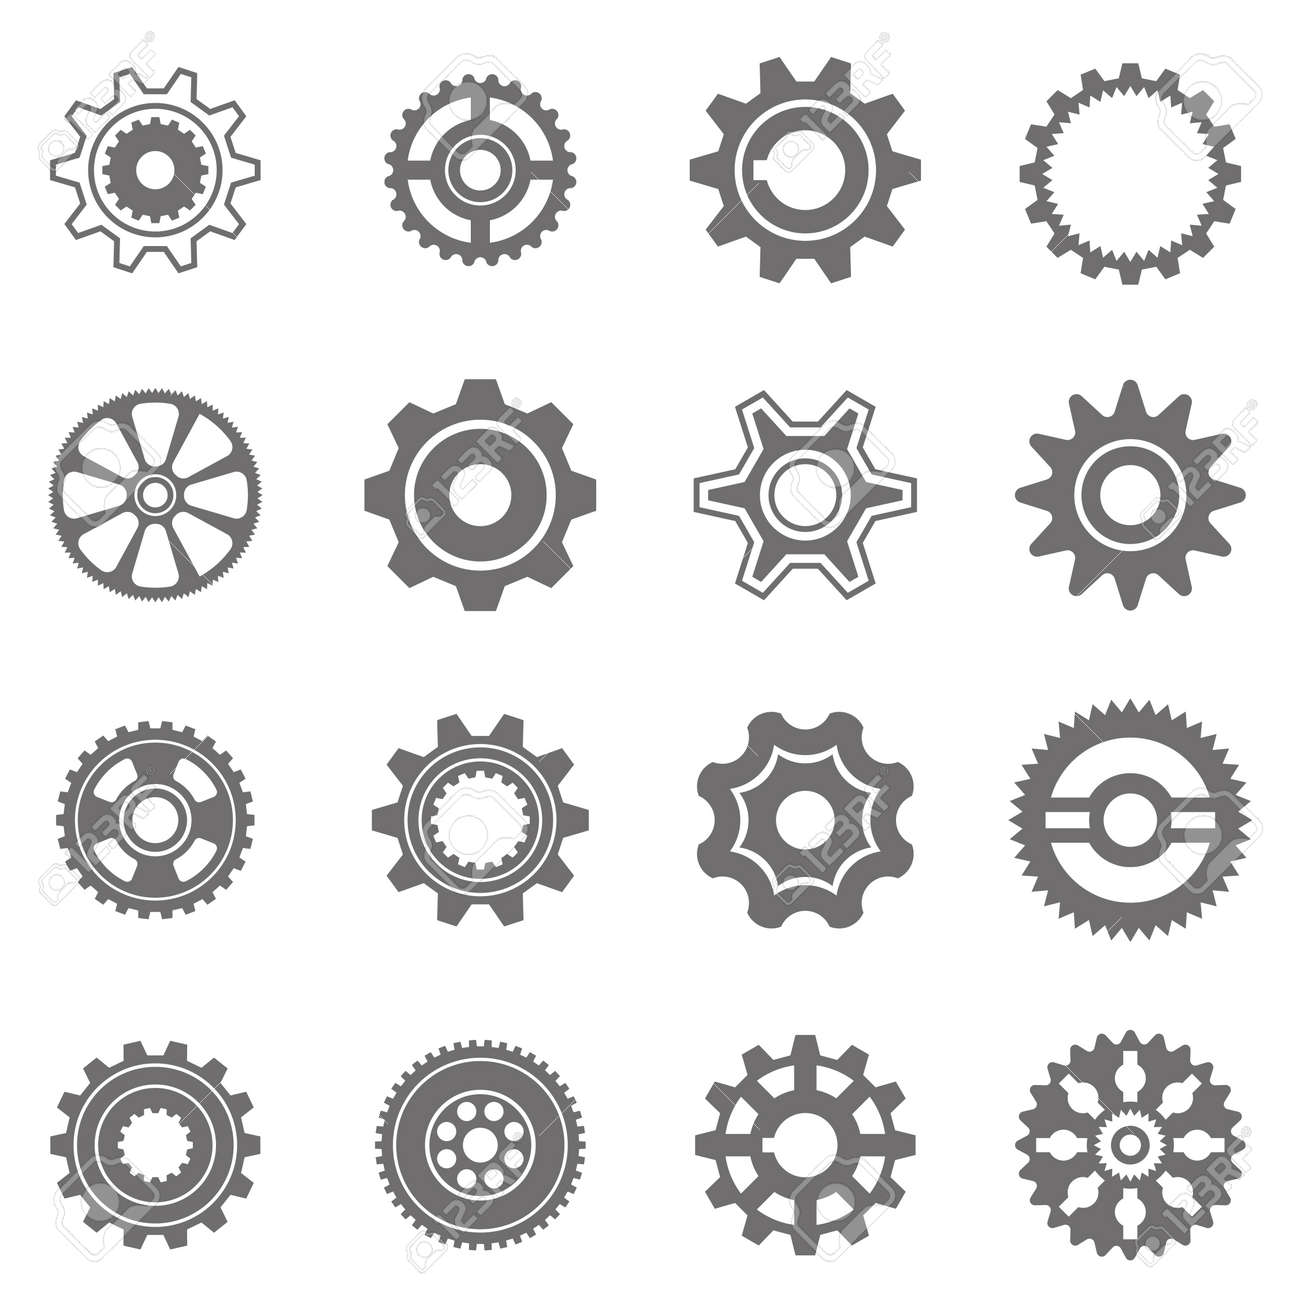 Set of gear wheels in black and white. By changing size, gears can be combined into mechanism. - 54510378